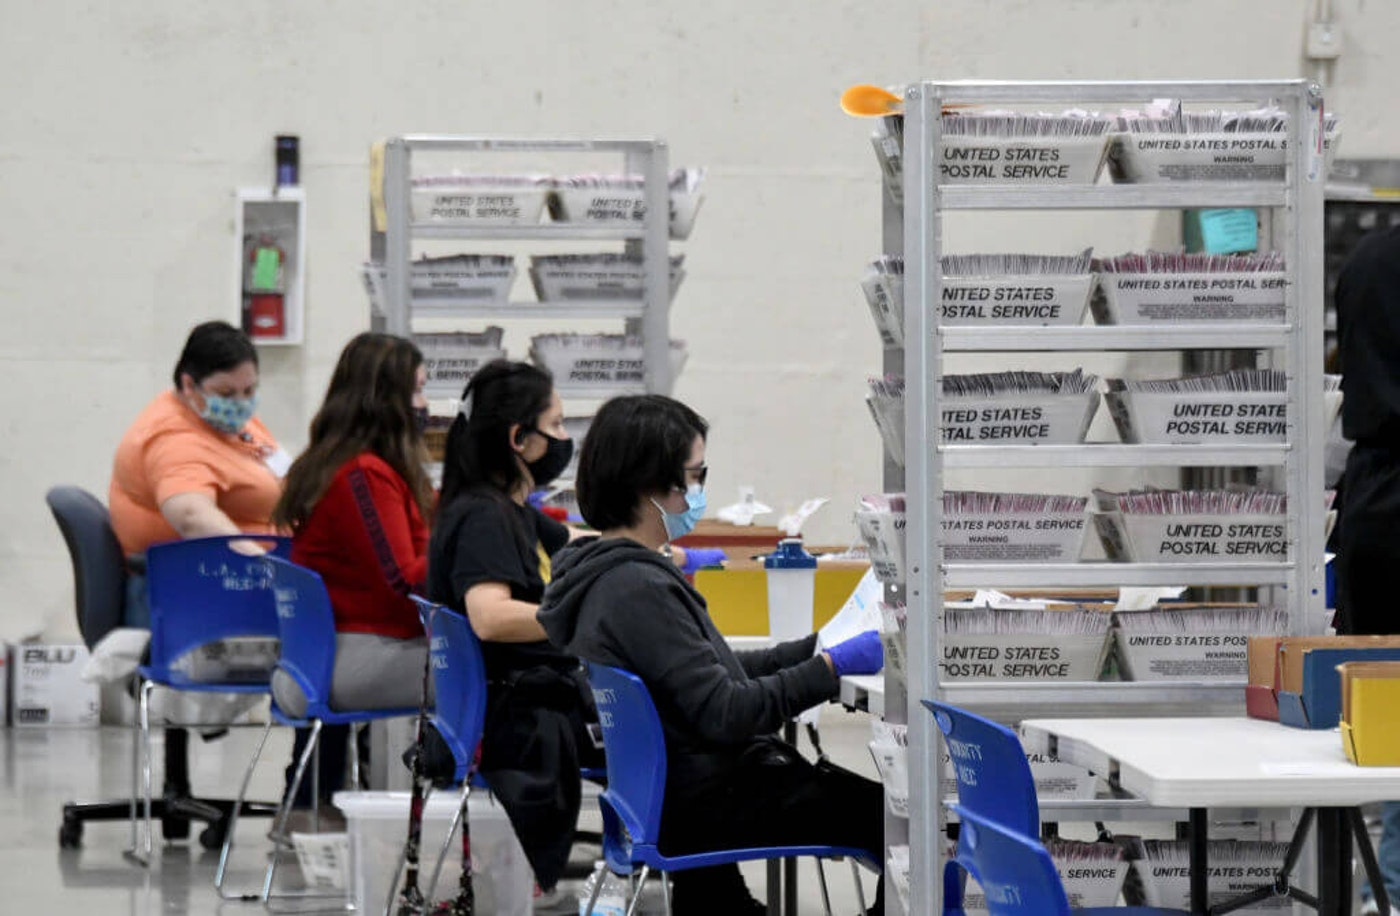 At the ballot processing center at the LA County Registrar temporary building at the Fairplex in Pomona on Friday, October 23, 2020. (Photo by Keith Birmingham/MediaNews Group/Pasadena Star-News via Getty Images)